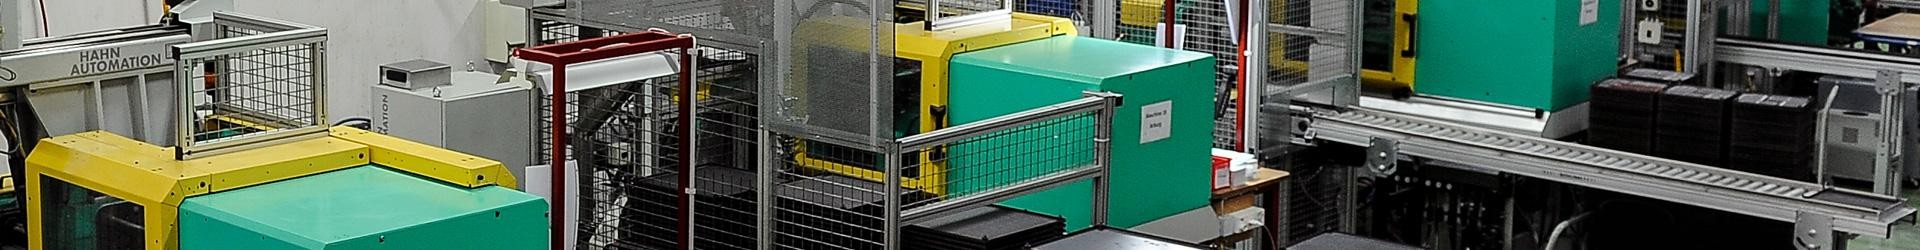 Parmaco Metal Injection Molding AG | LinkedIn